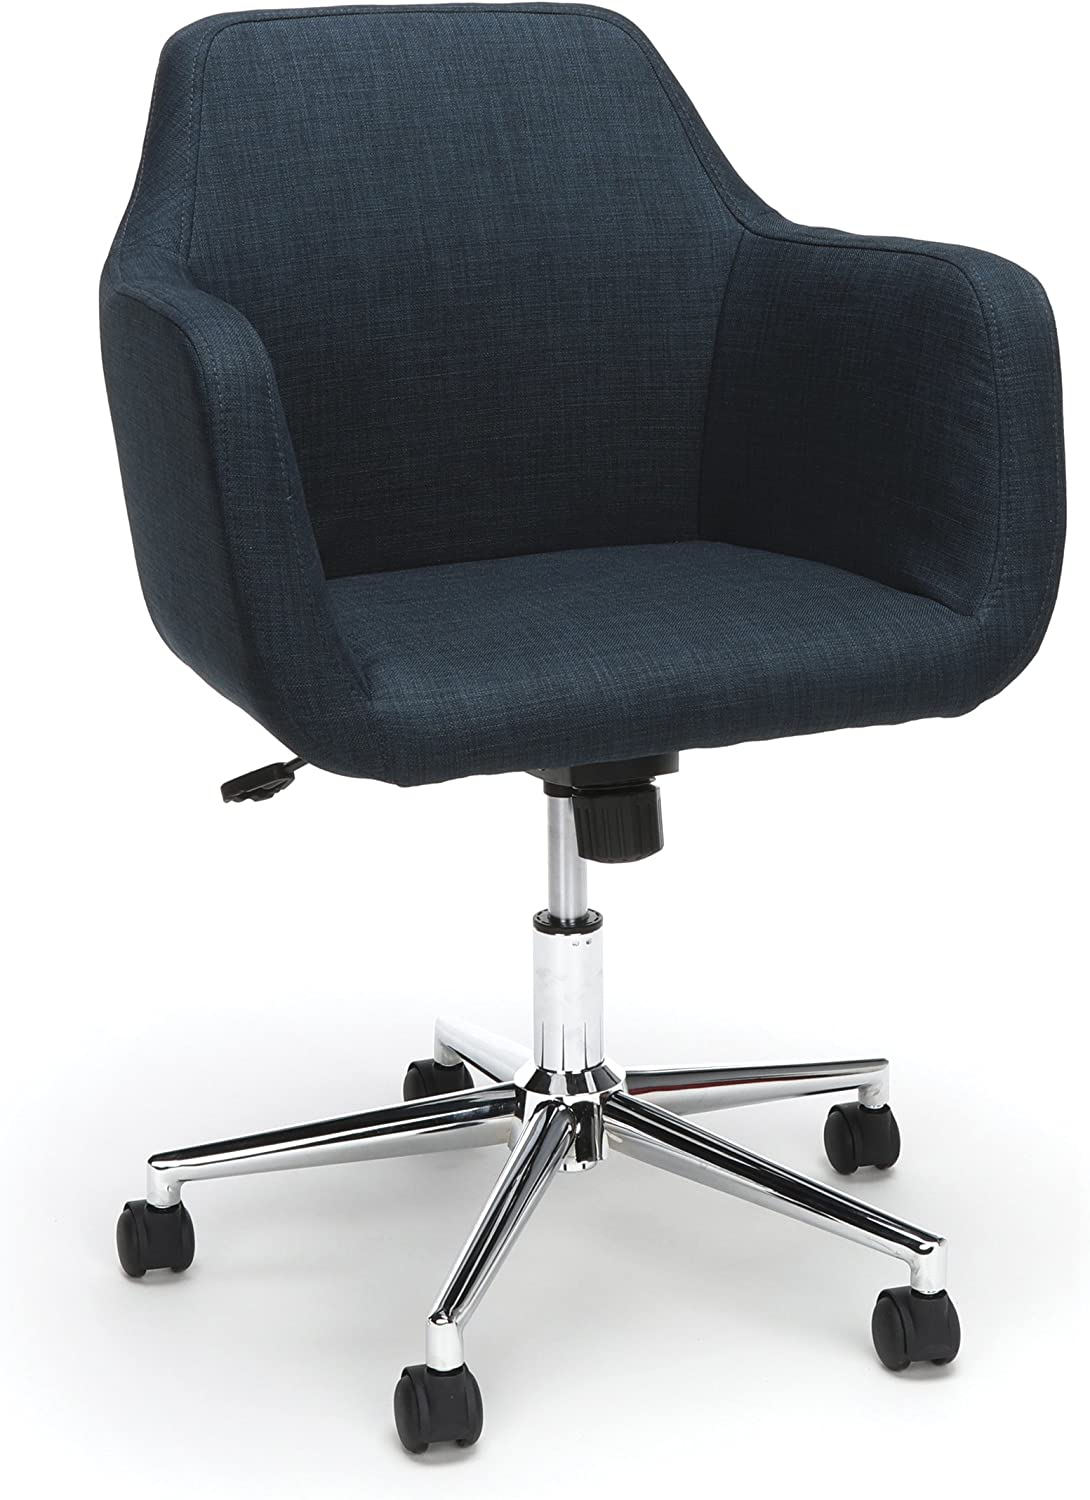 Essentials Upholstered Home Office Chair - Ergonomic Desk Chair with Arms for Conference Room Or Office, bluee (ESS-2085-blue)